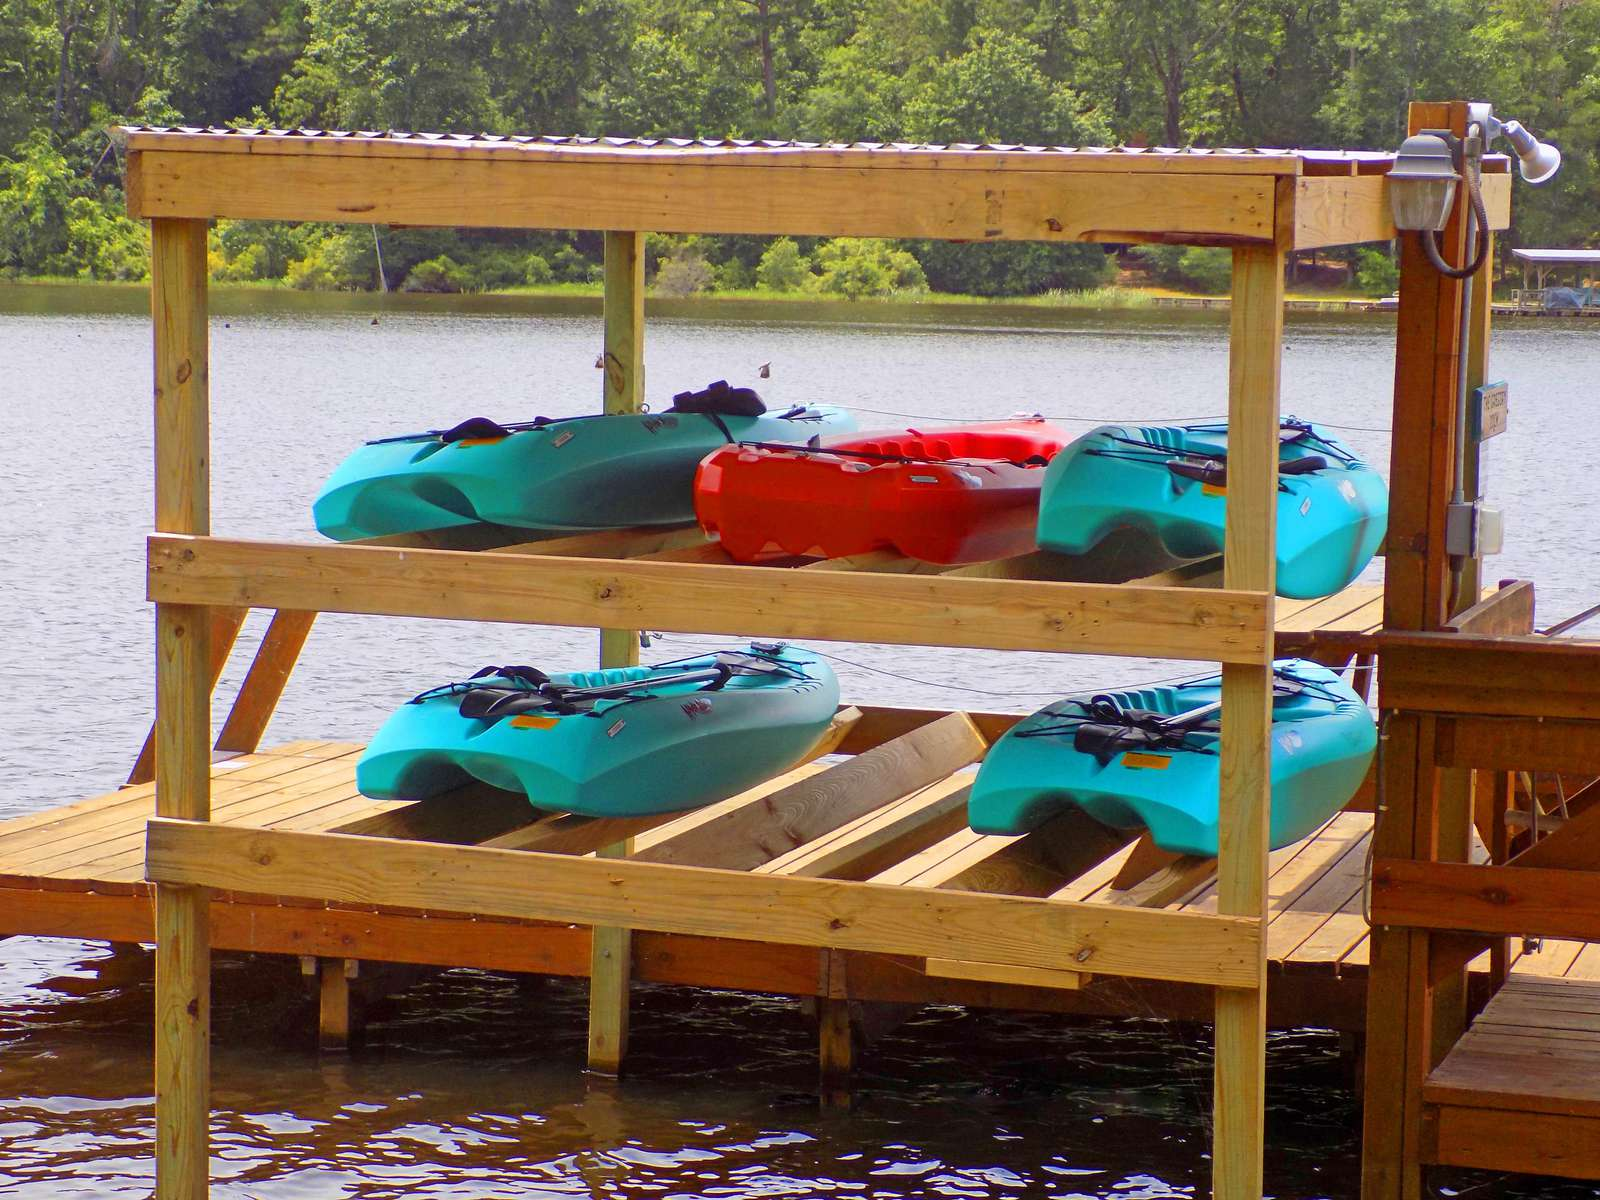 These kayaks are for you and your guests. the cove is a great place to explore.